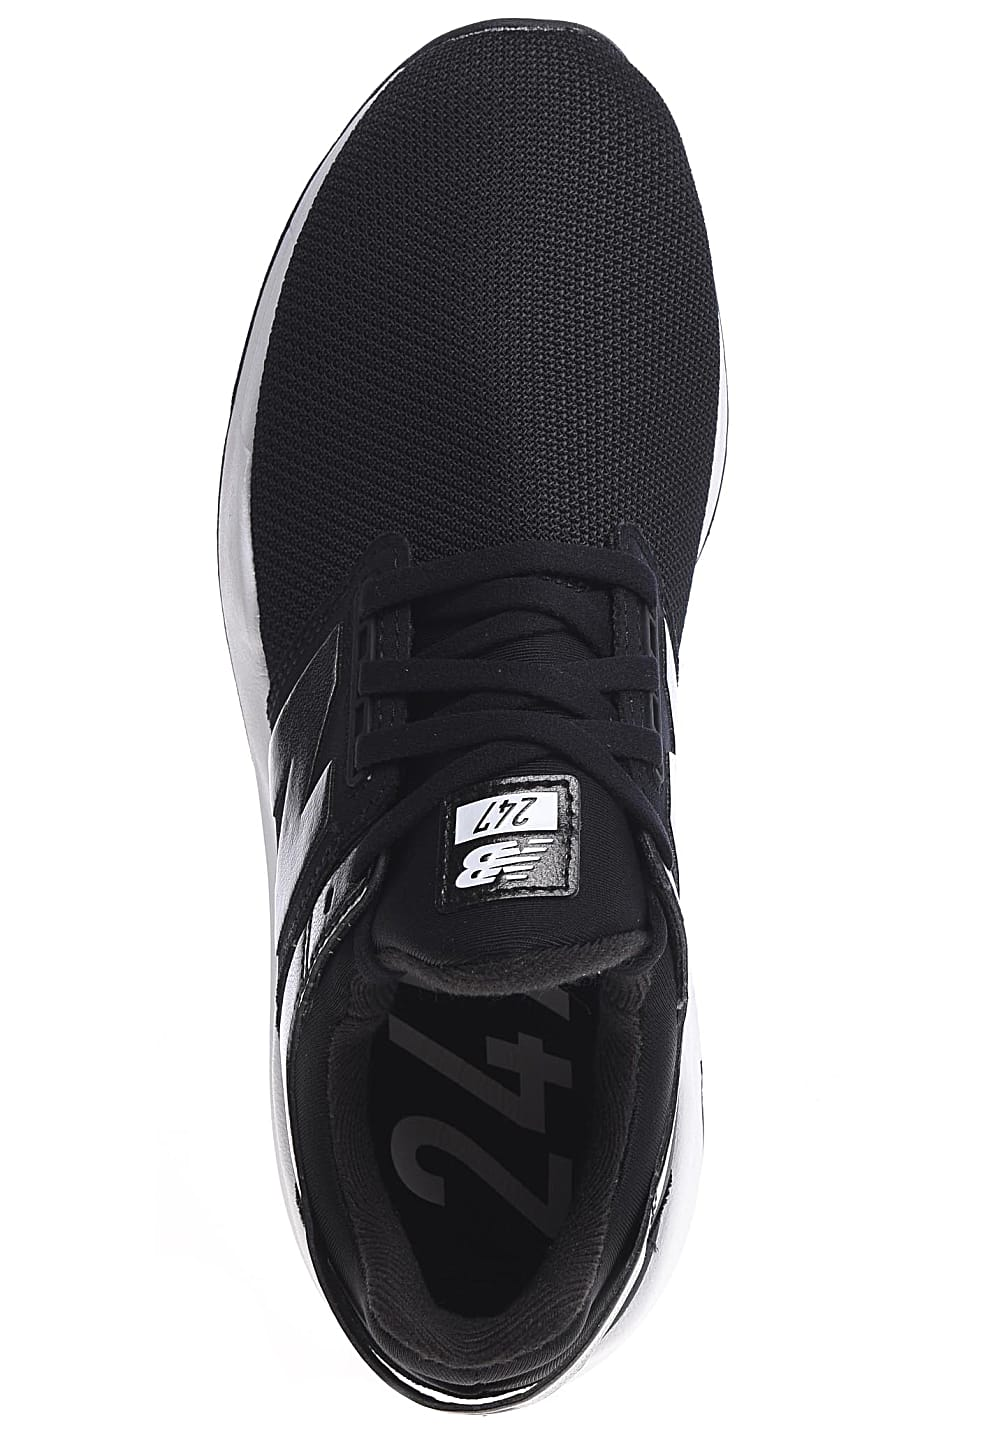 NEW BALANCE WS247 B Sneakers for Women Black